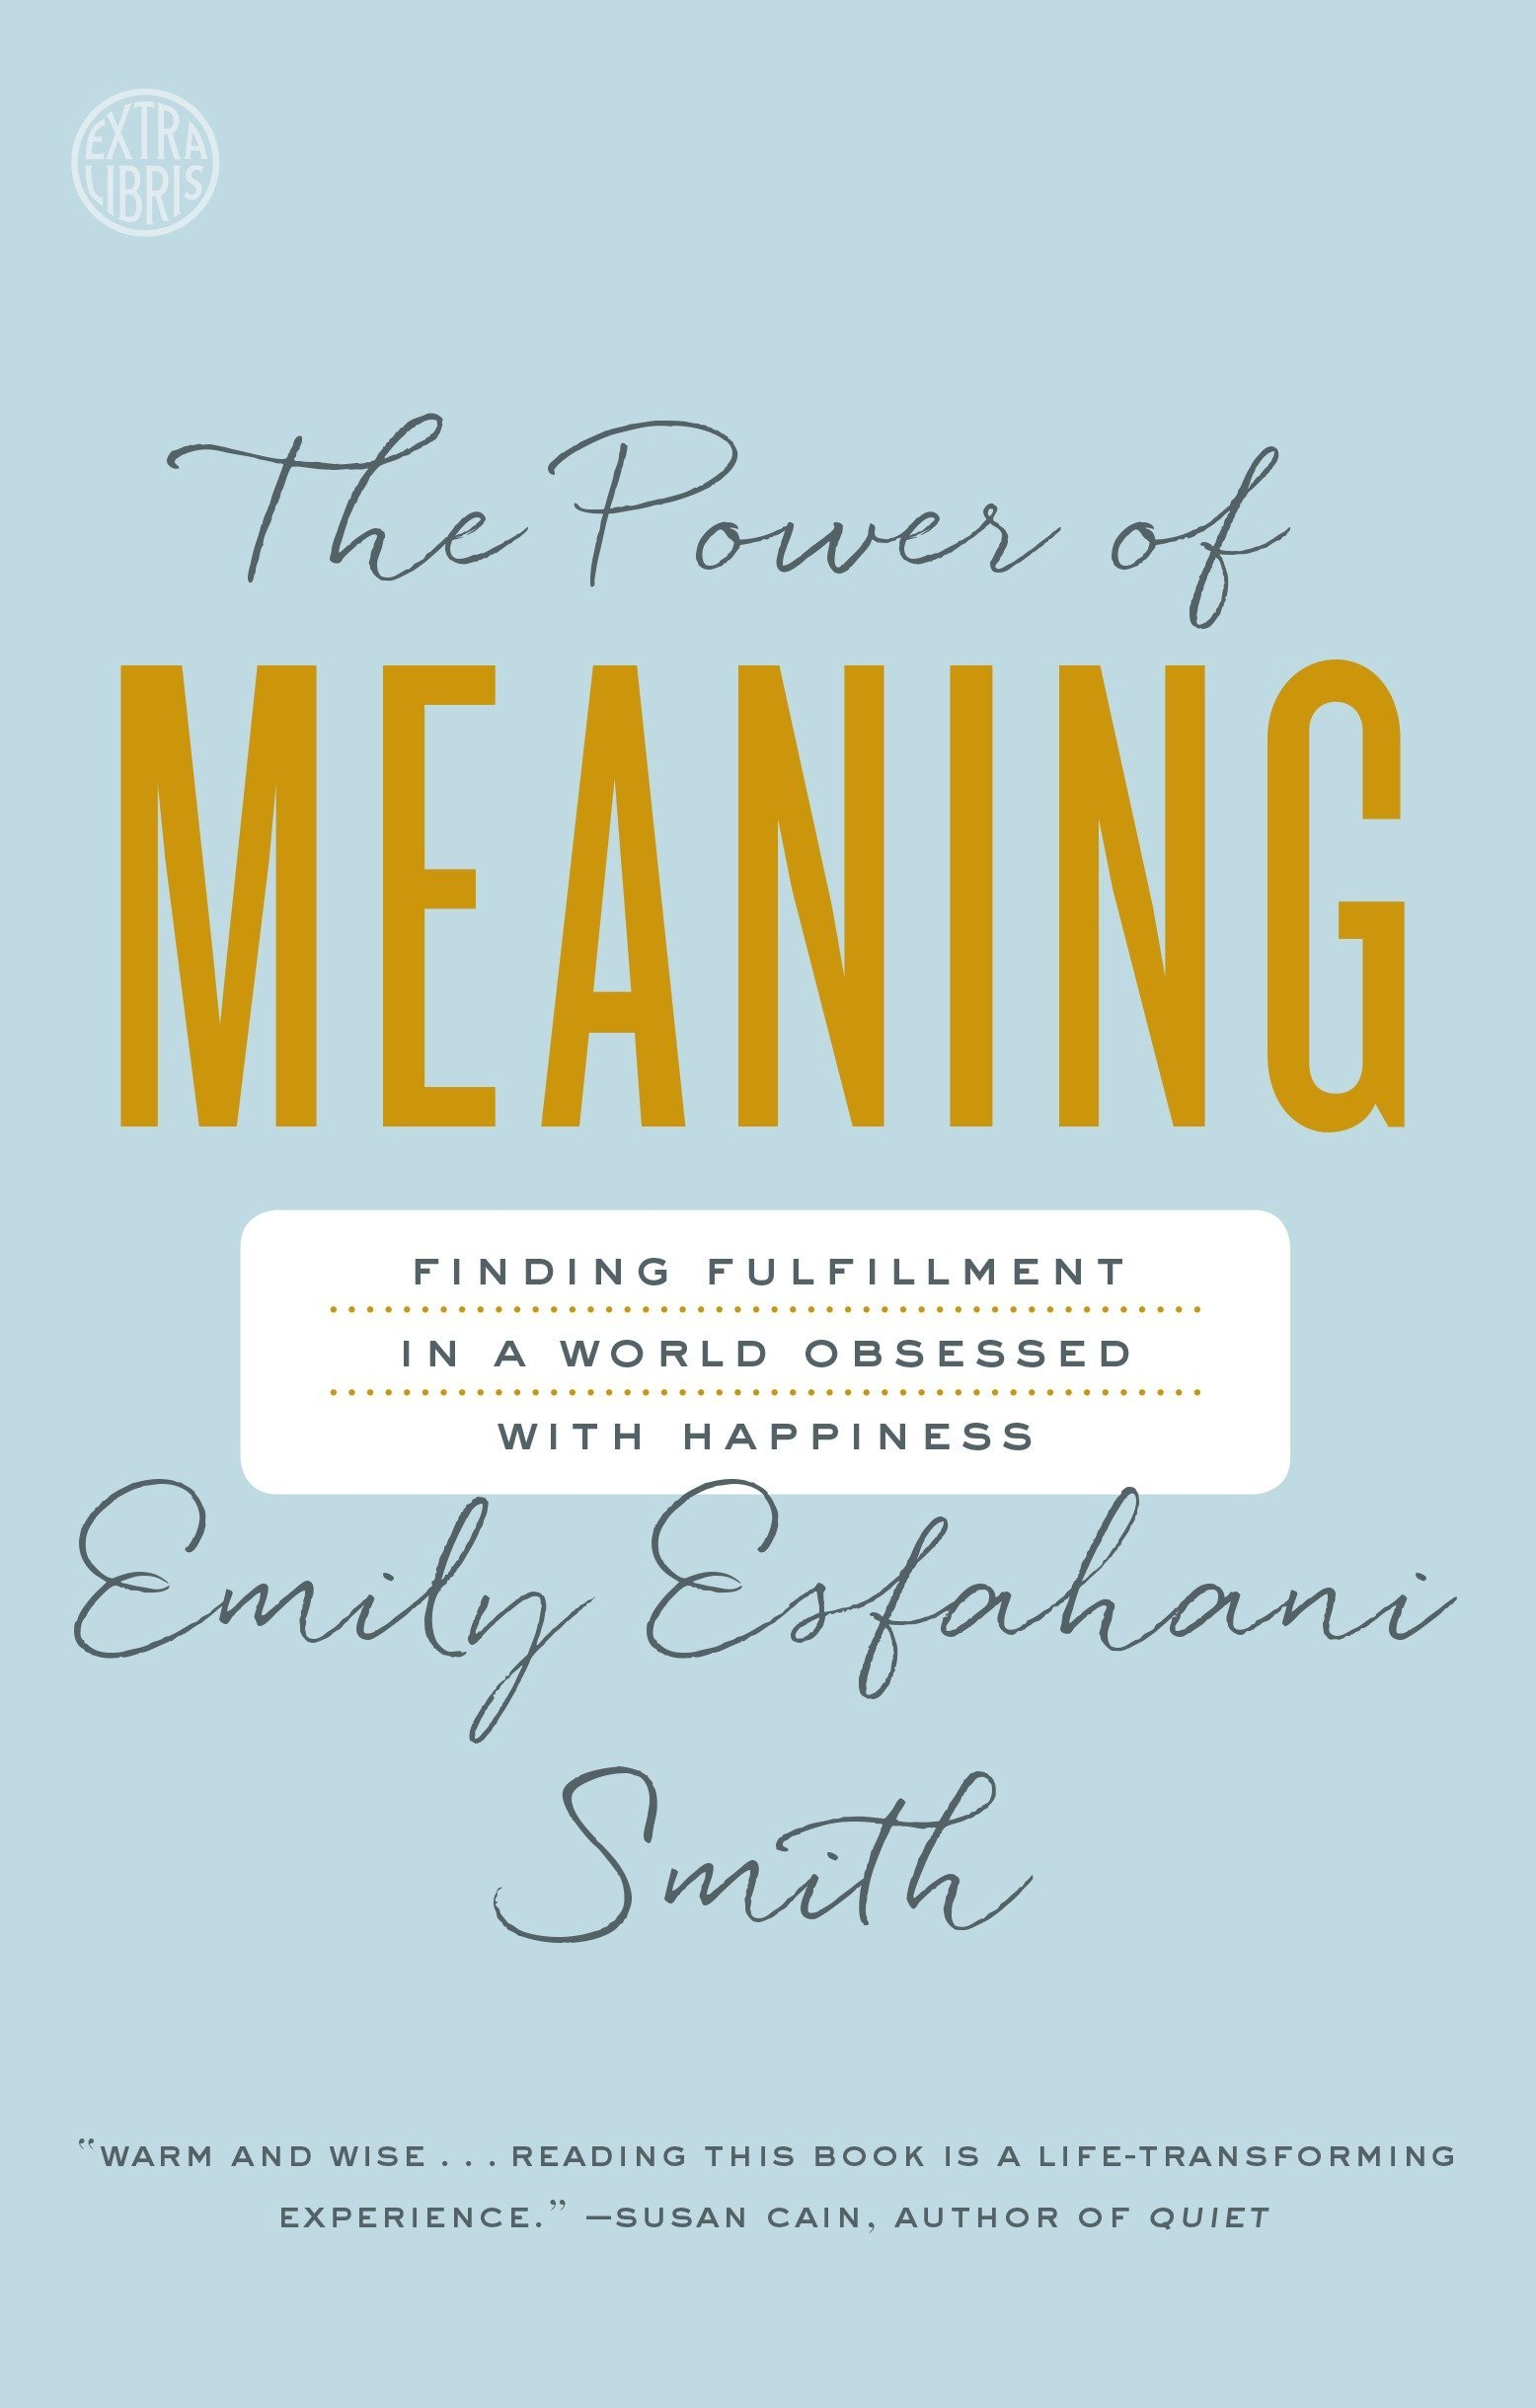 The Power Of Meaning Finding Fulfillment In A World Obsessed With